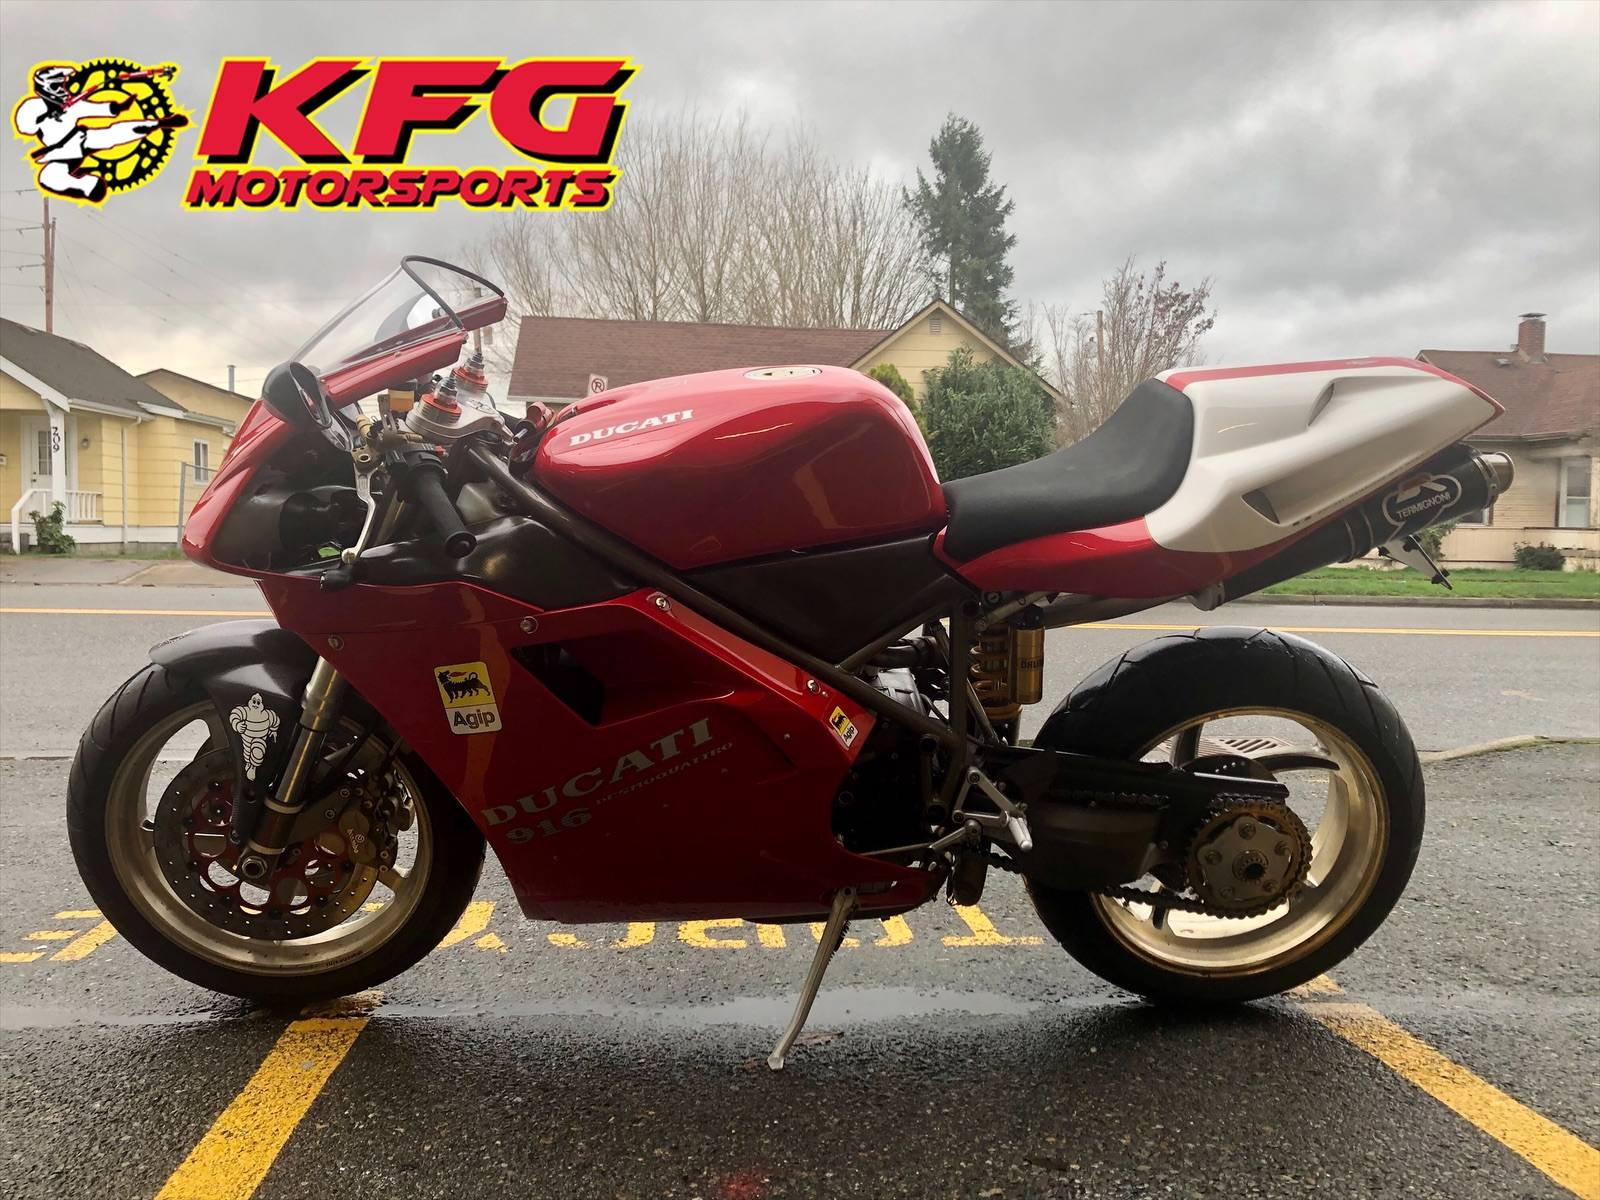 1995 Ducati 916 in Auburn, Washington - Photo 2